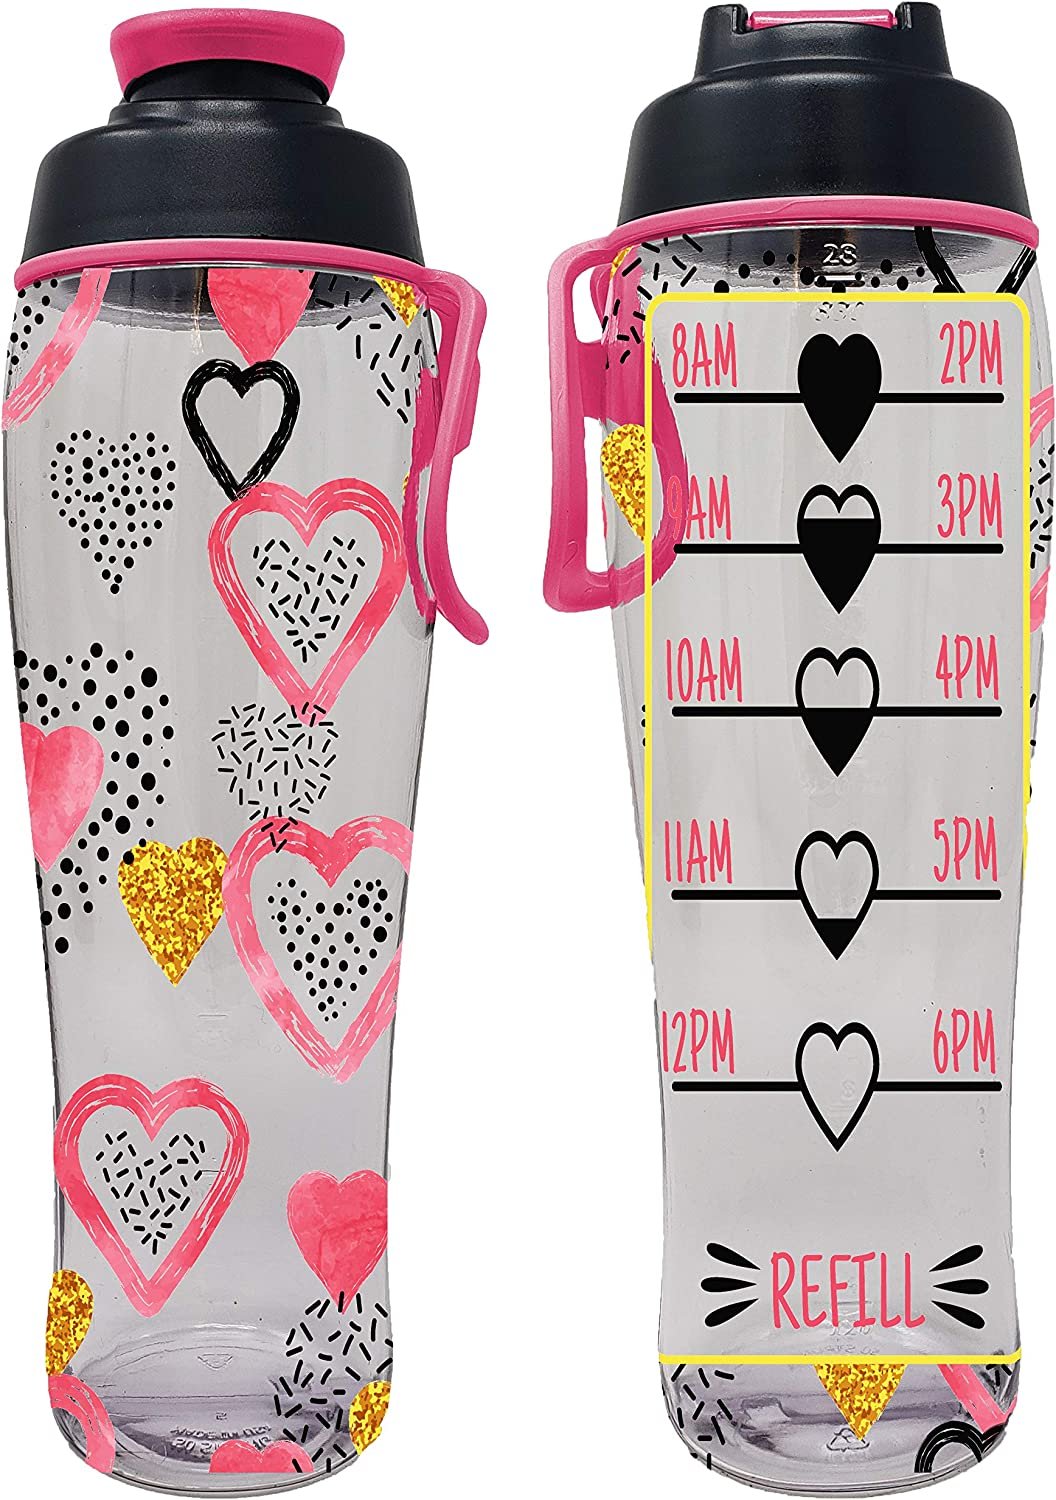 50 Strong BPA Free Reusable Water Bottle with Time Marker Motivational Fitness Bottles Drink More Water Daily Tracker Helps You Drink Water All Day -Made in USA Hours Marked